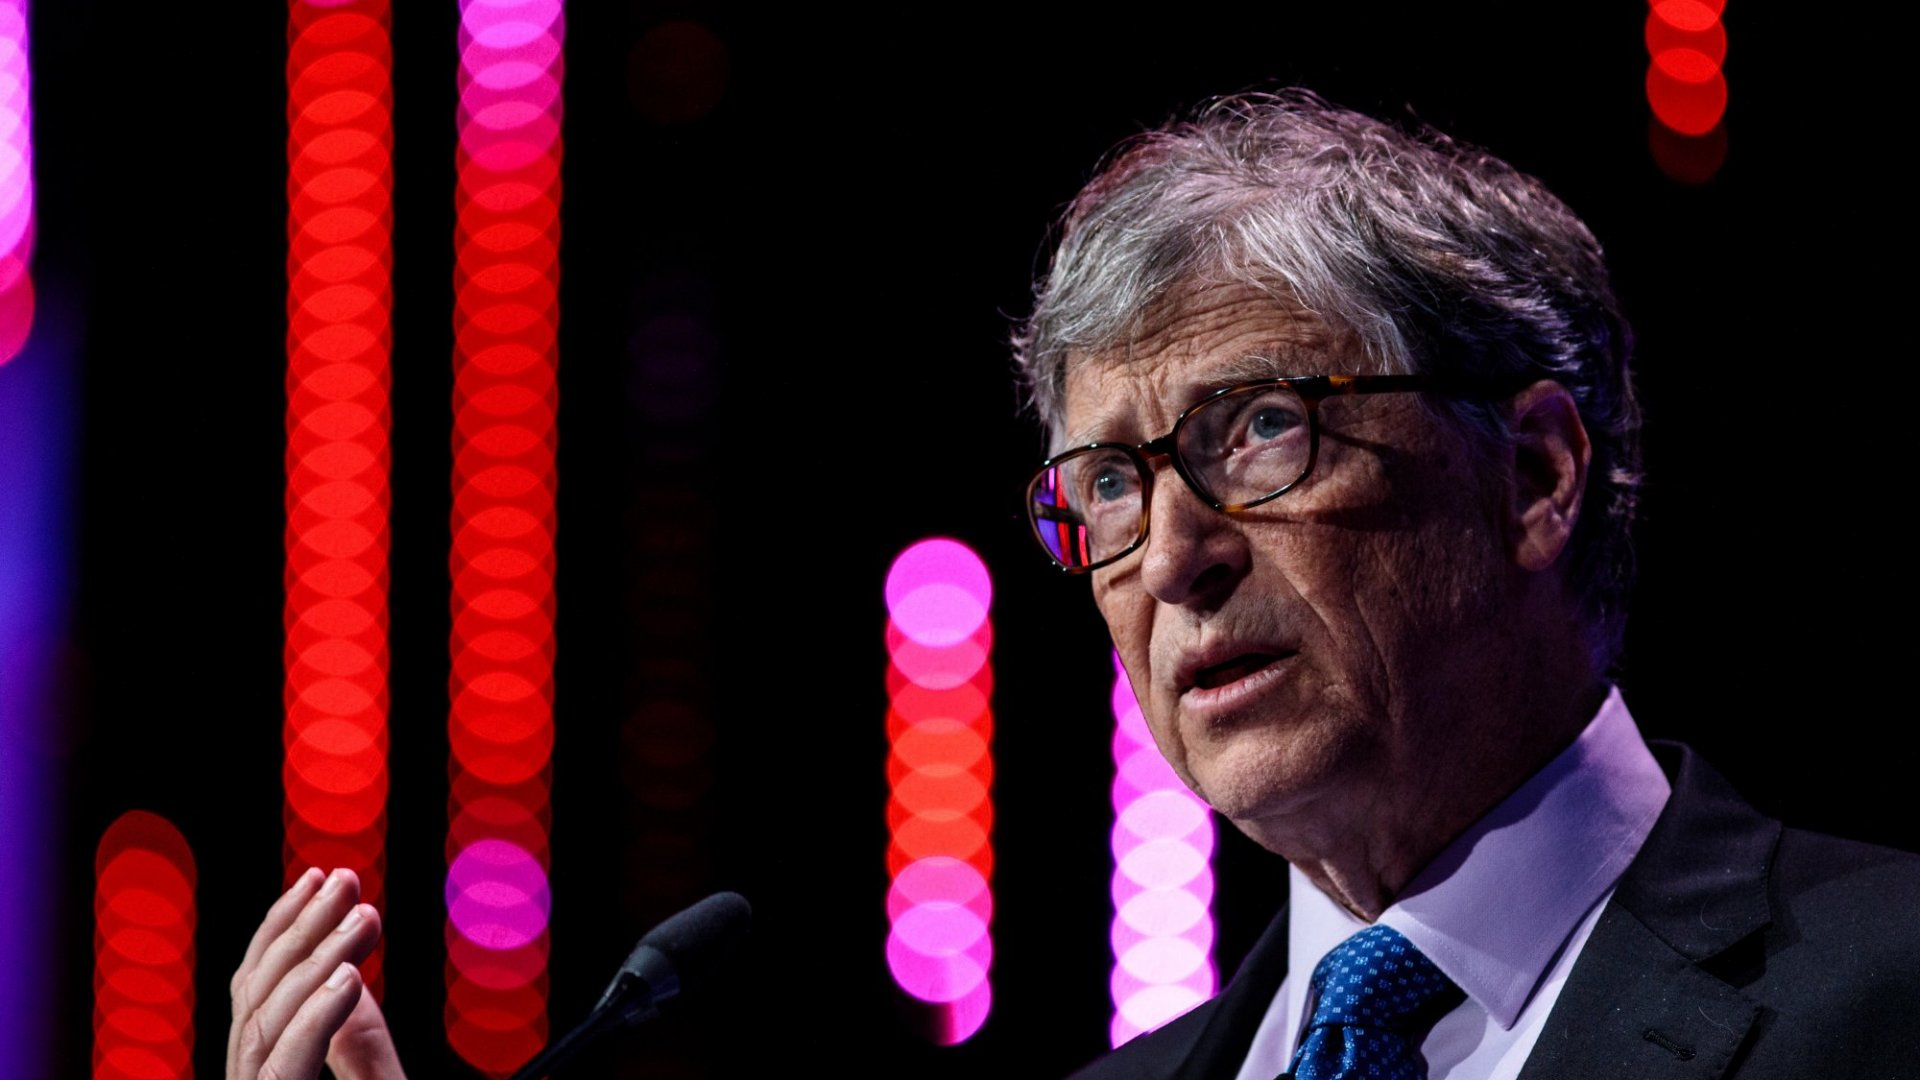 Here's What Bill Gates Had to Say About the Coronavirus and the Economy